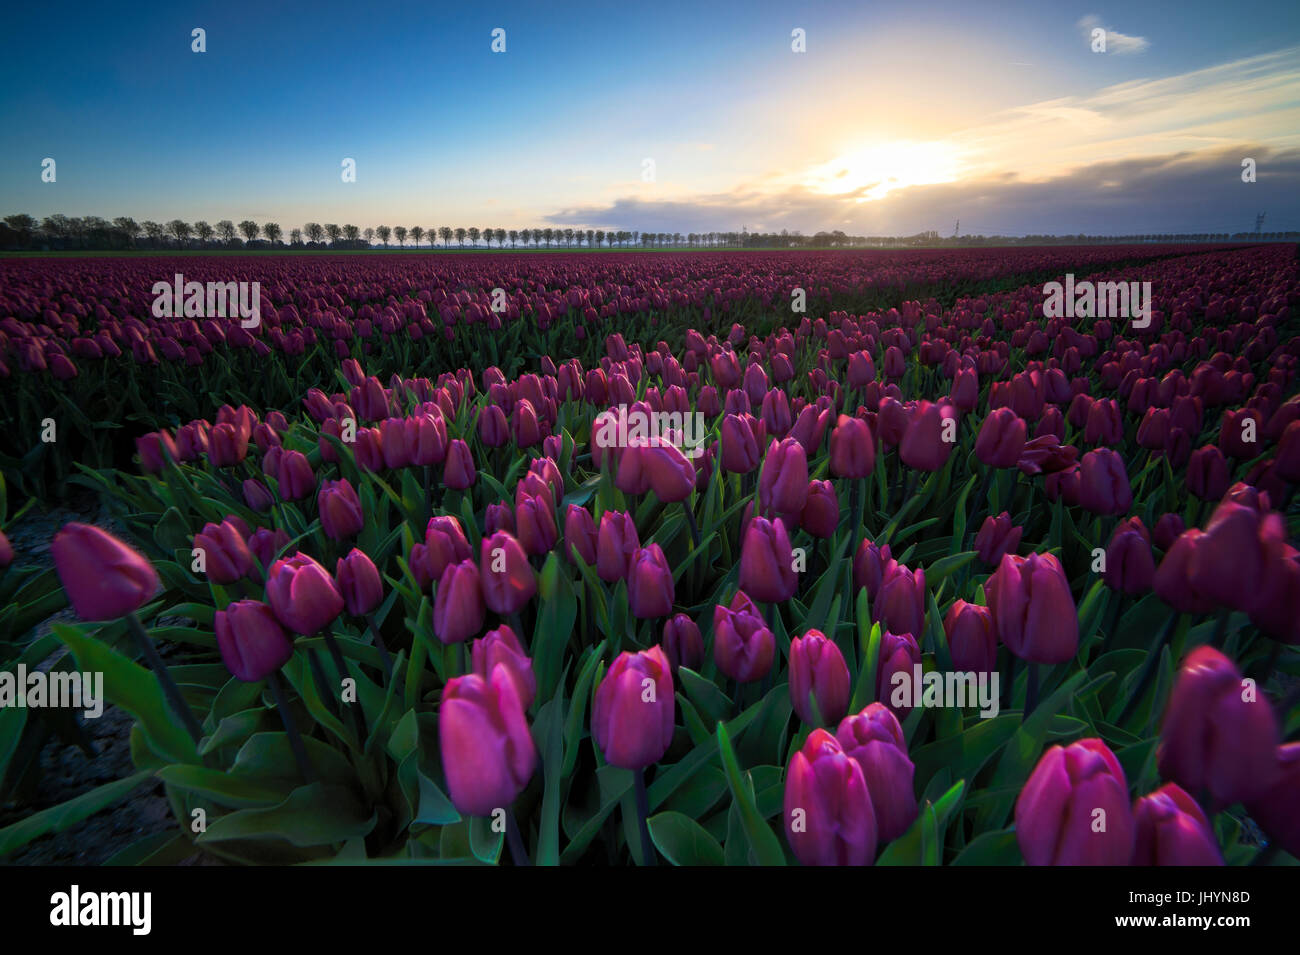 Colourful fields of tulips in bloom at dawn, De Rijp, Alkmaar, North Holland, Netherlands, Europe - Stock Image